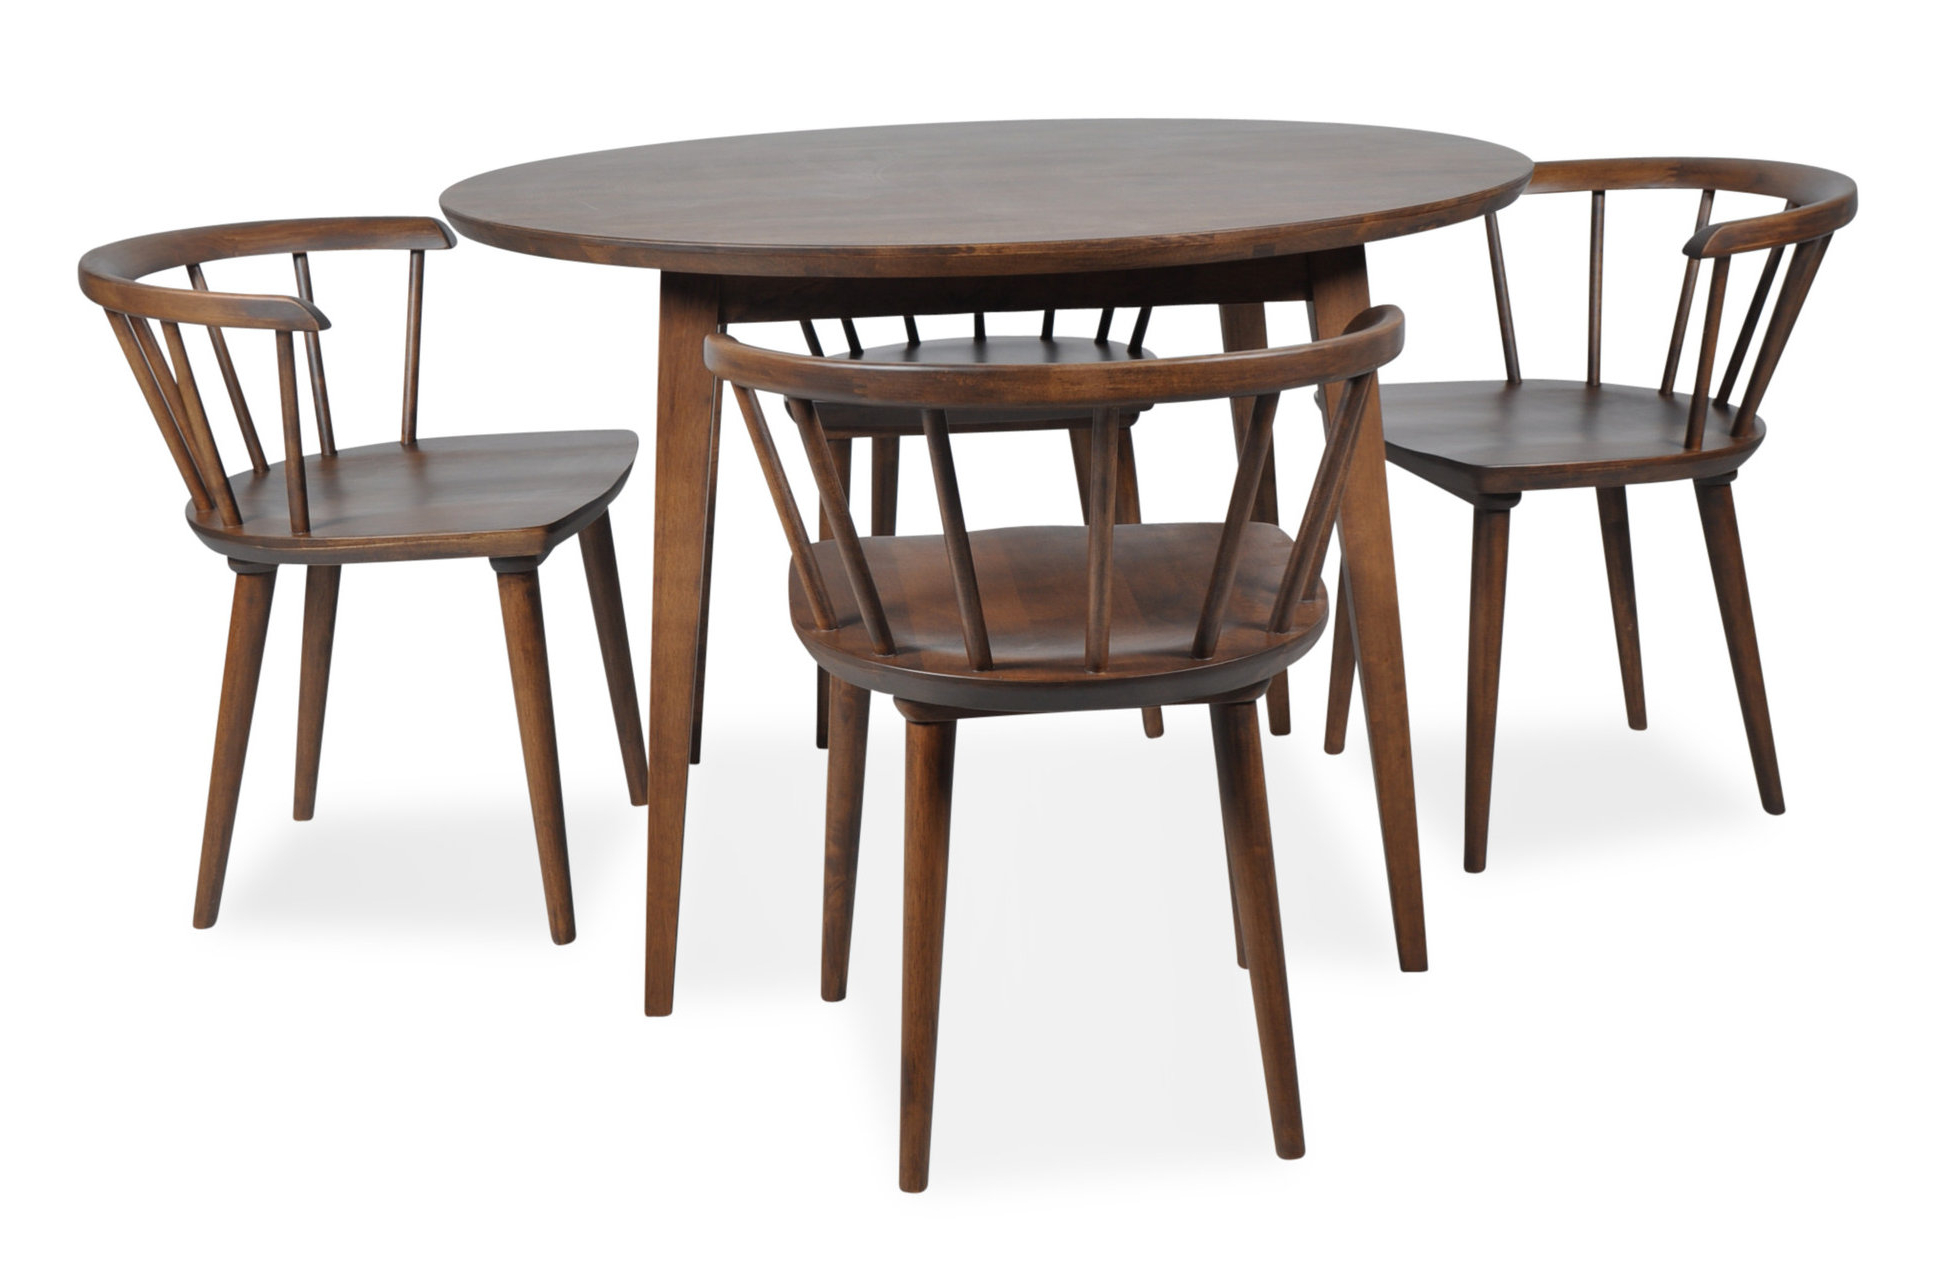 5 Piece Breakfast Nook Dining Sets In Trendy Burgan 5 Piece Solid Wood Breakfast Nook Dining Set (Gallery 8 of 20)